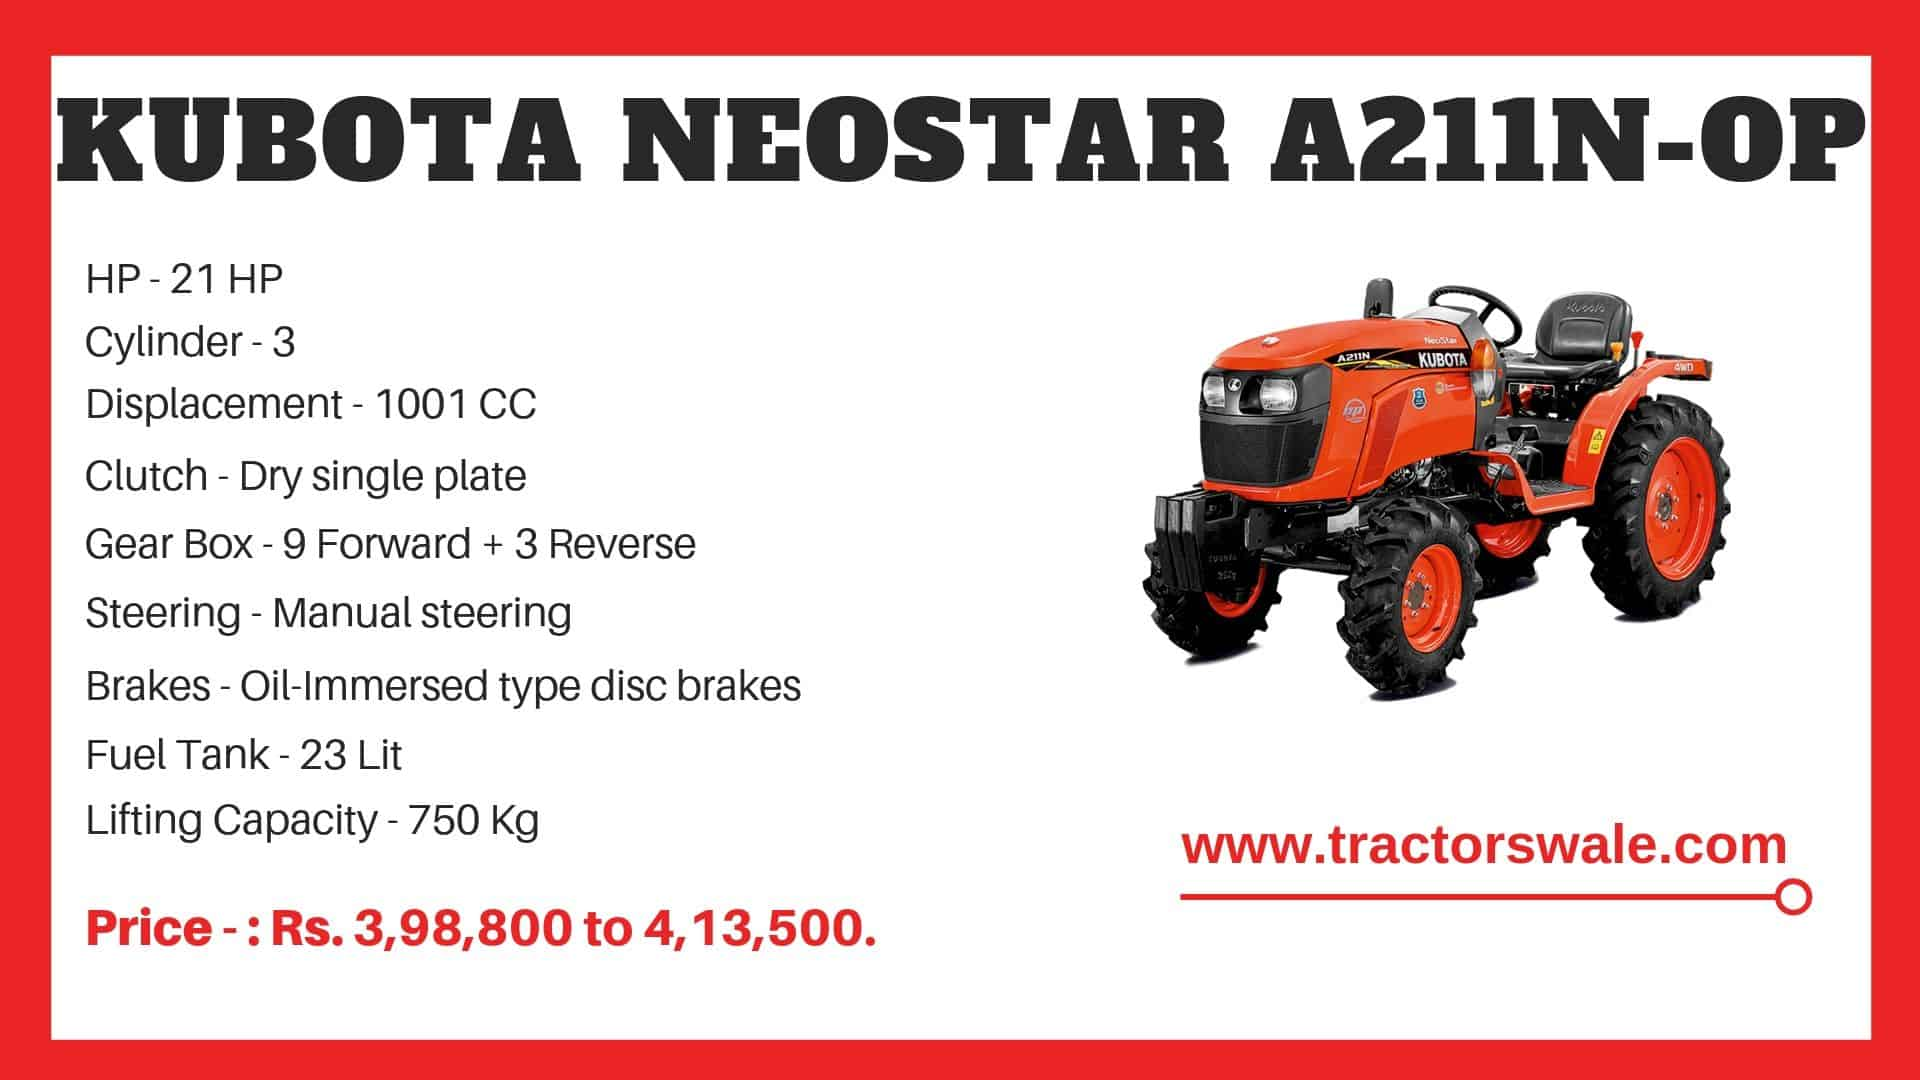 Specifications Of Kubota A211N-OP Tractor